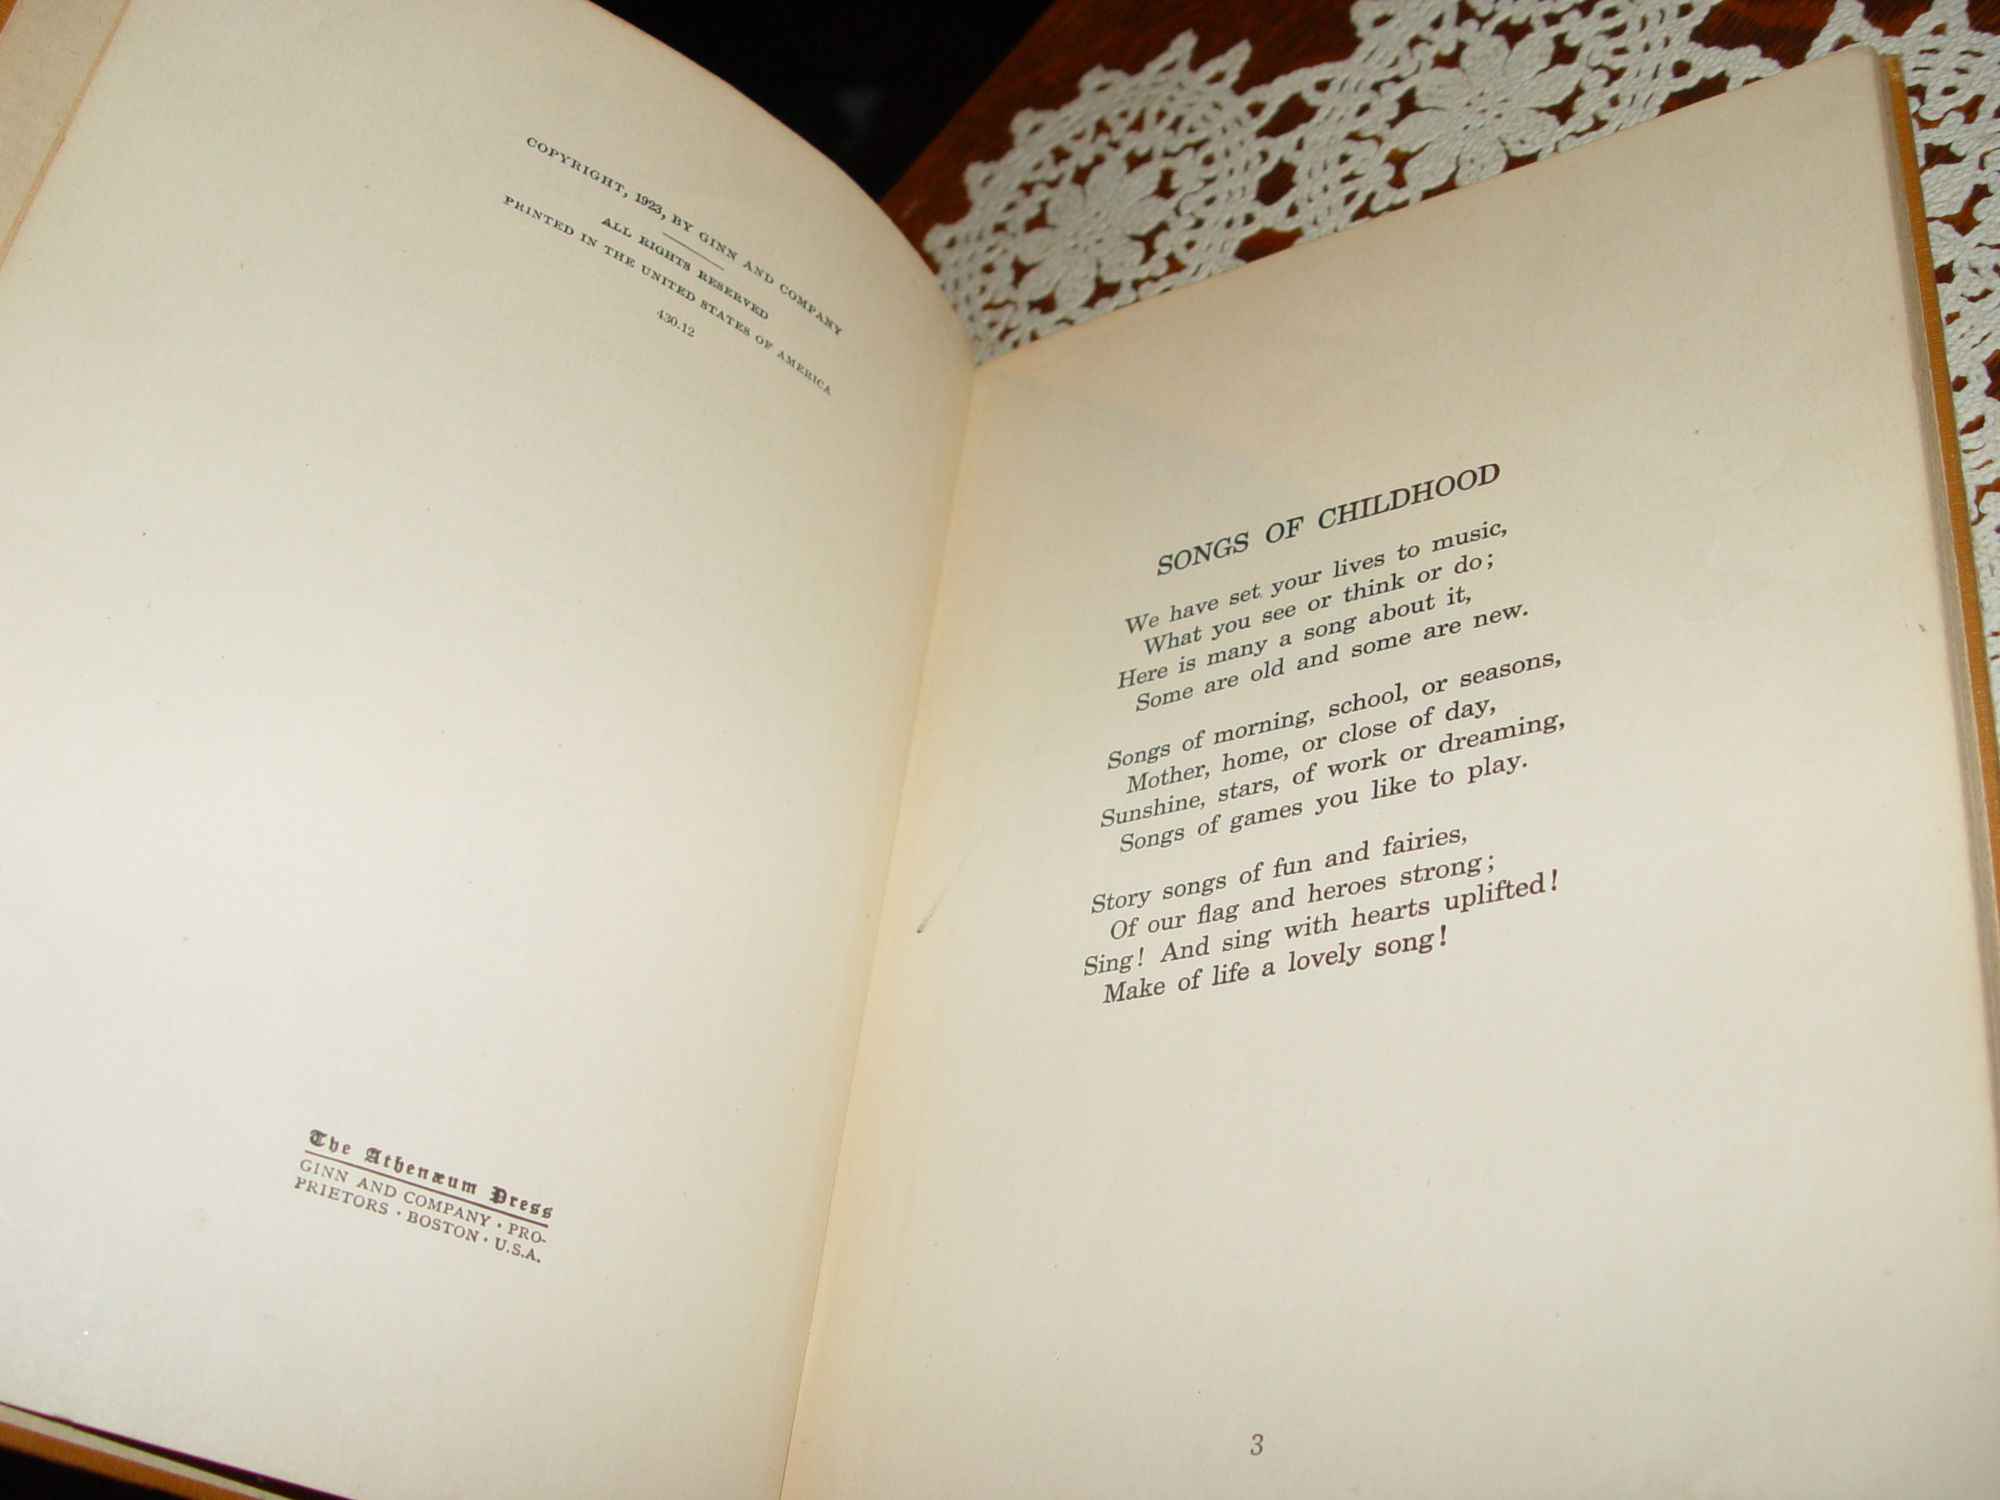 Hemlands-Klockan Hymn book                                         by Andgila Sanger. Publisher P.                                         Benson 1907 Swedish songs and                                         music